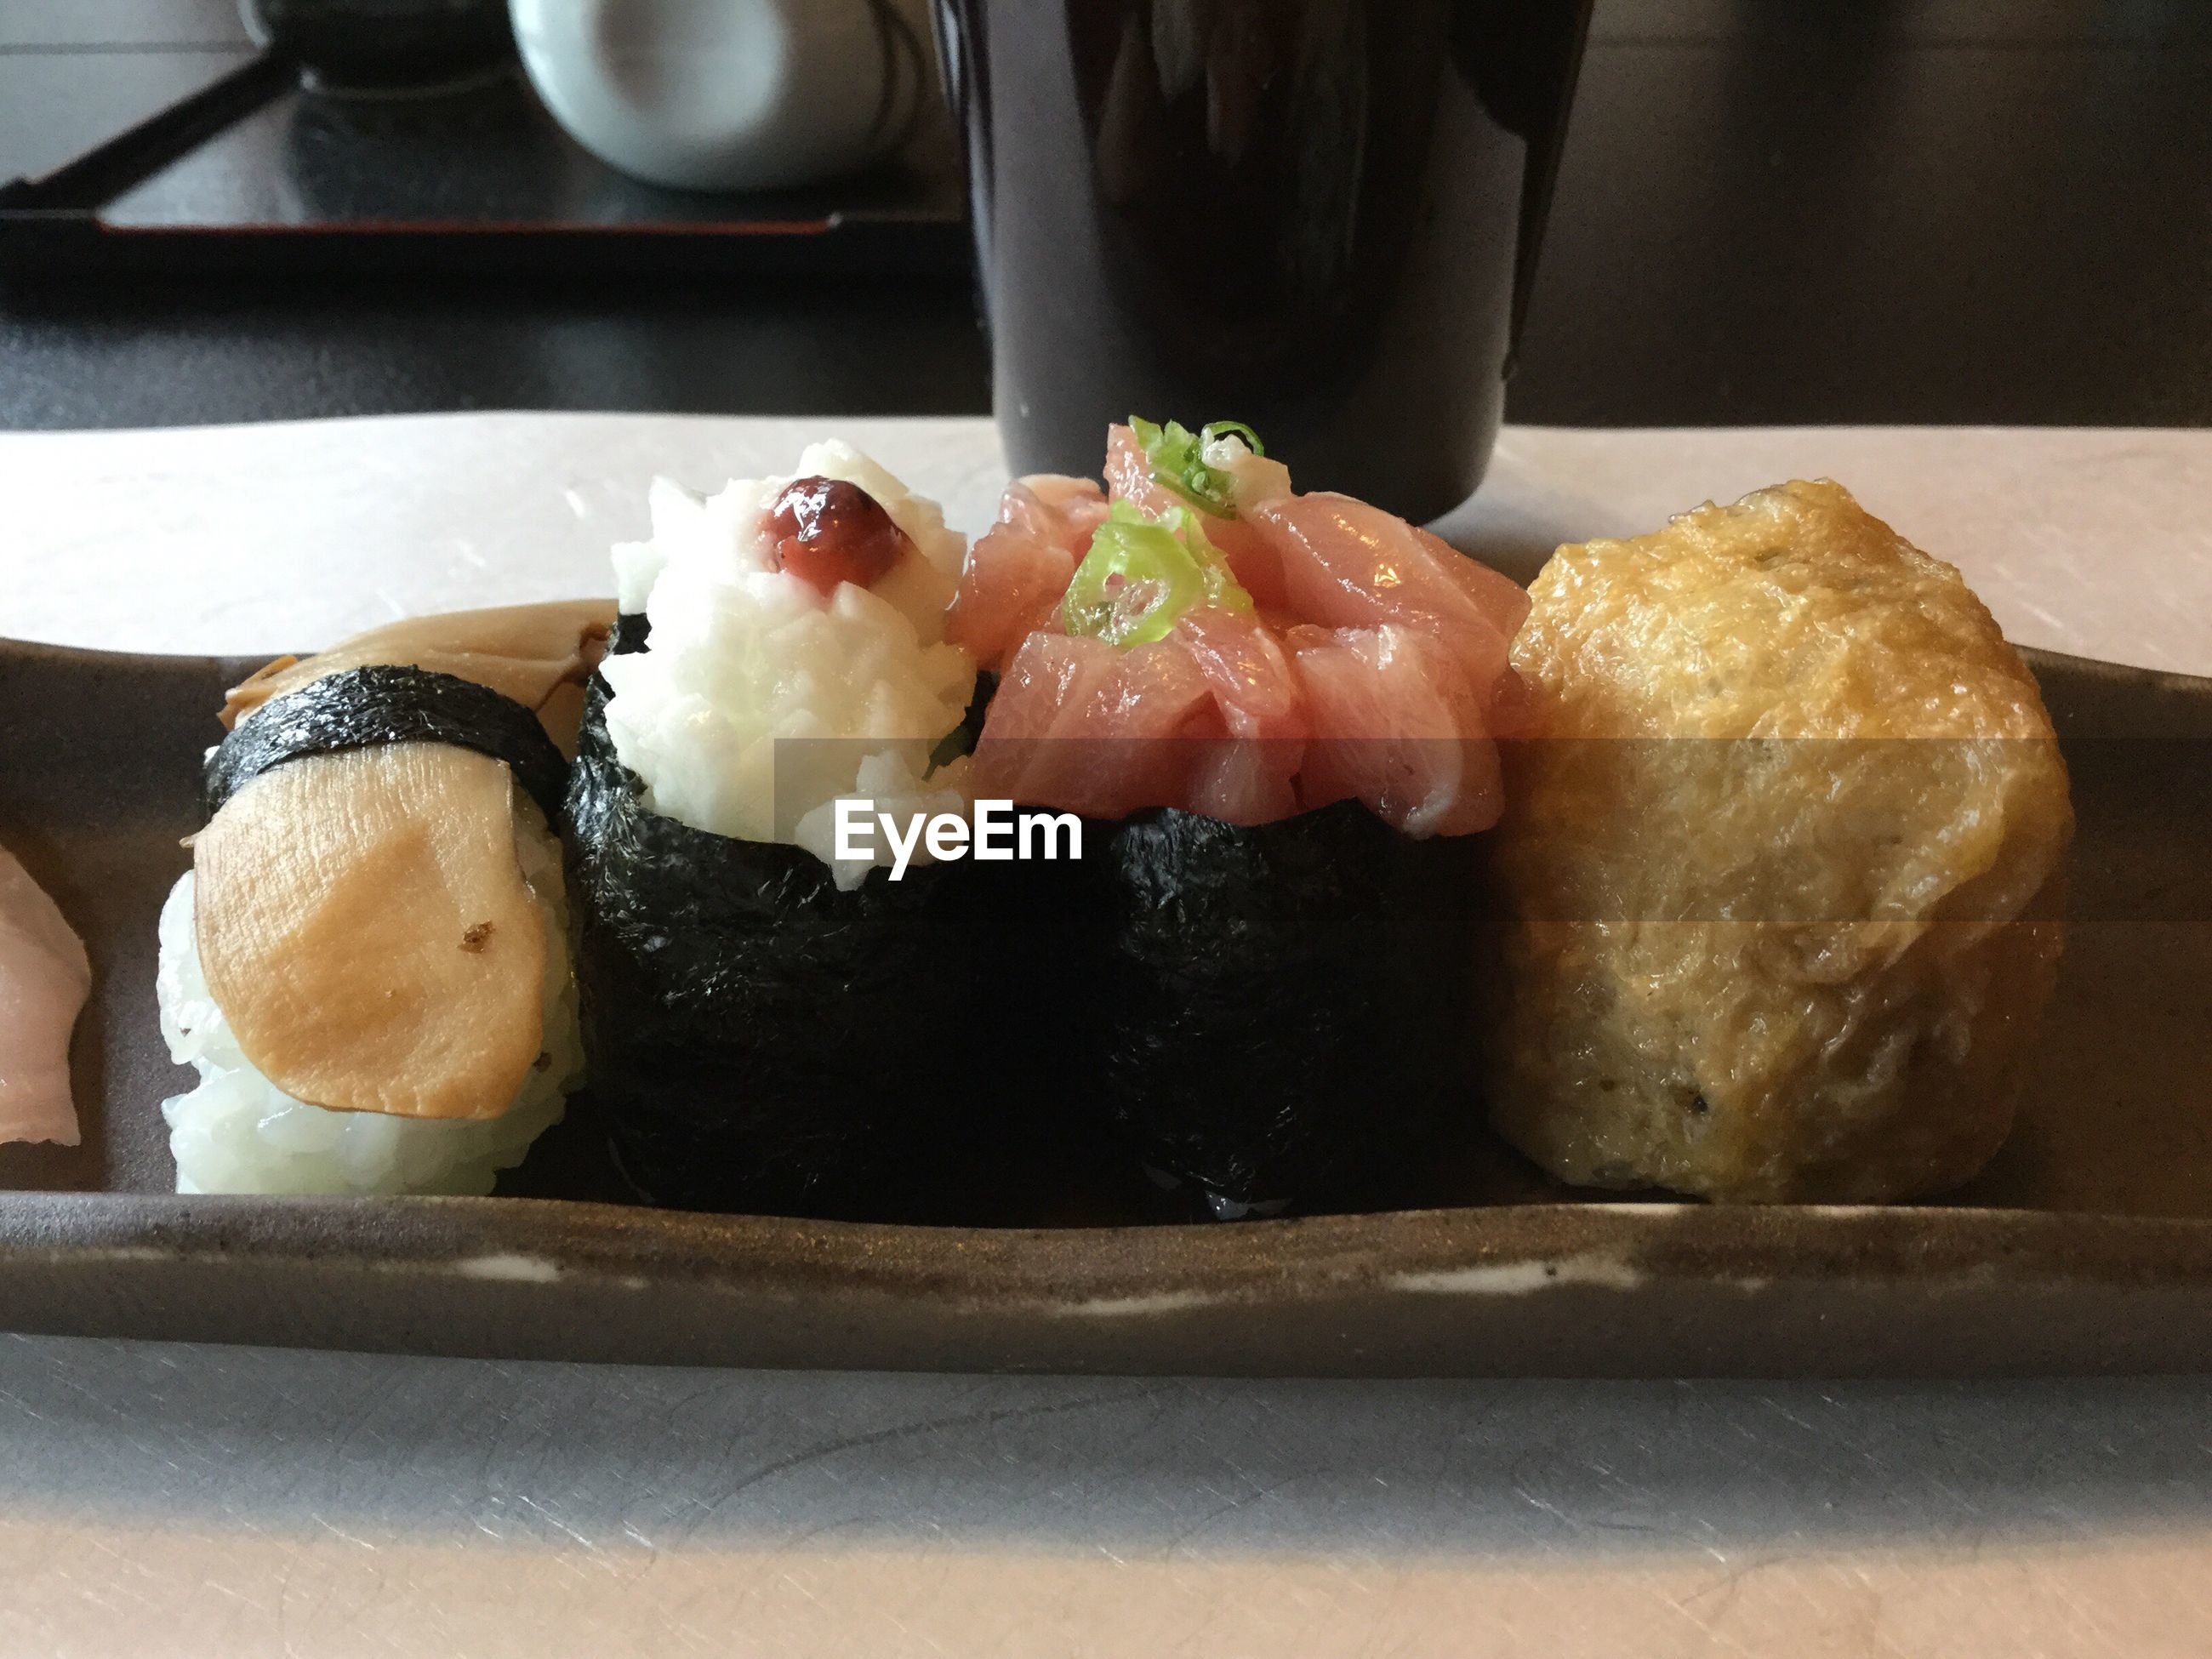 food and drink, food, indoors, close-up, serving size, ready-to-eat, indulgence, japanese food, meal, still life, freshness, temptation, tray, plate, appetizer, culture, preparation, savory food, homemade, dessert, garnish, food styling, serving dish, main course, asian food